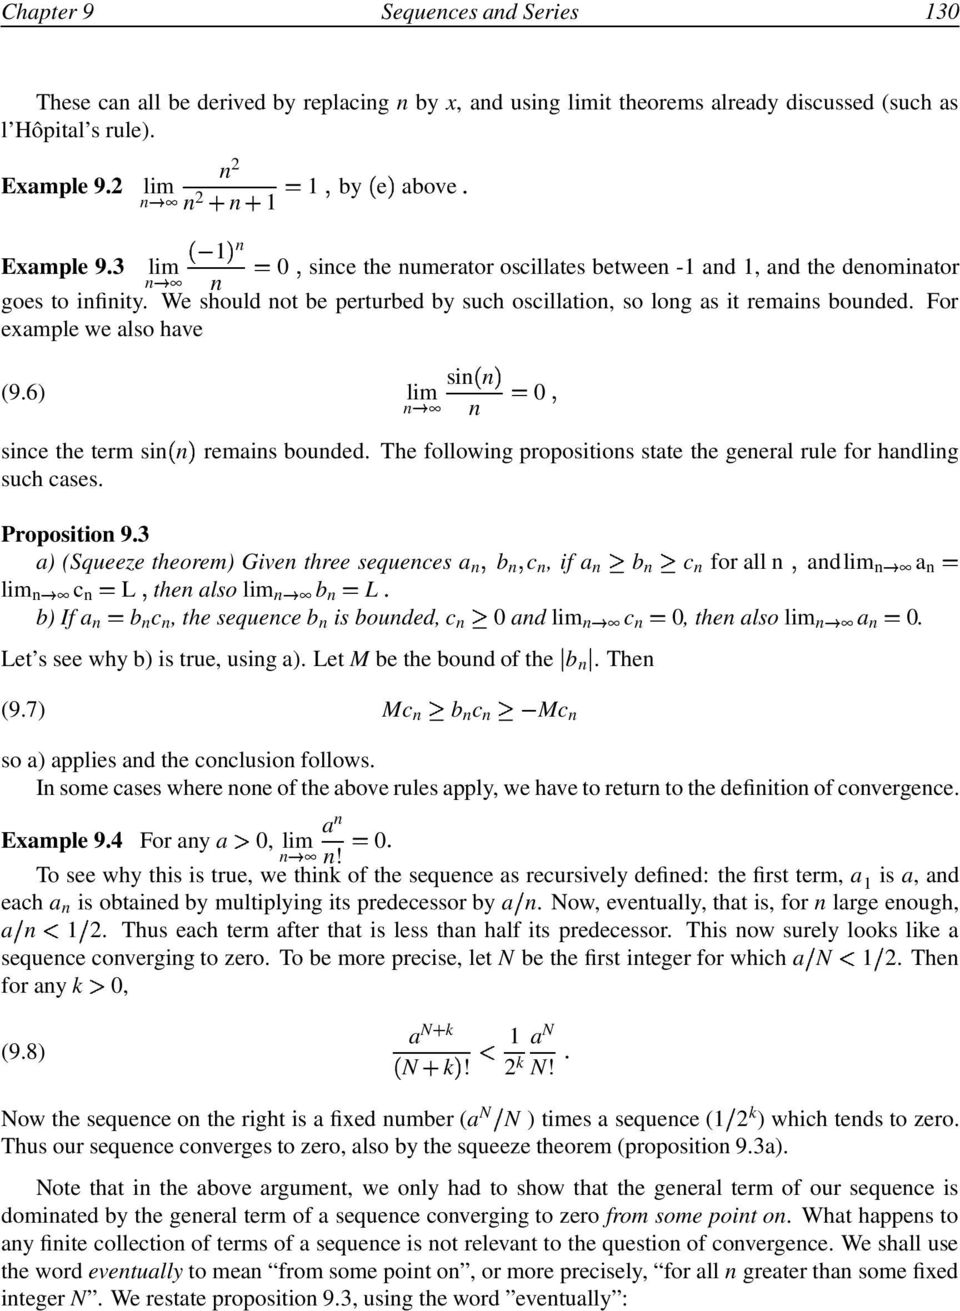 Sequences and Series - PDF